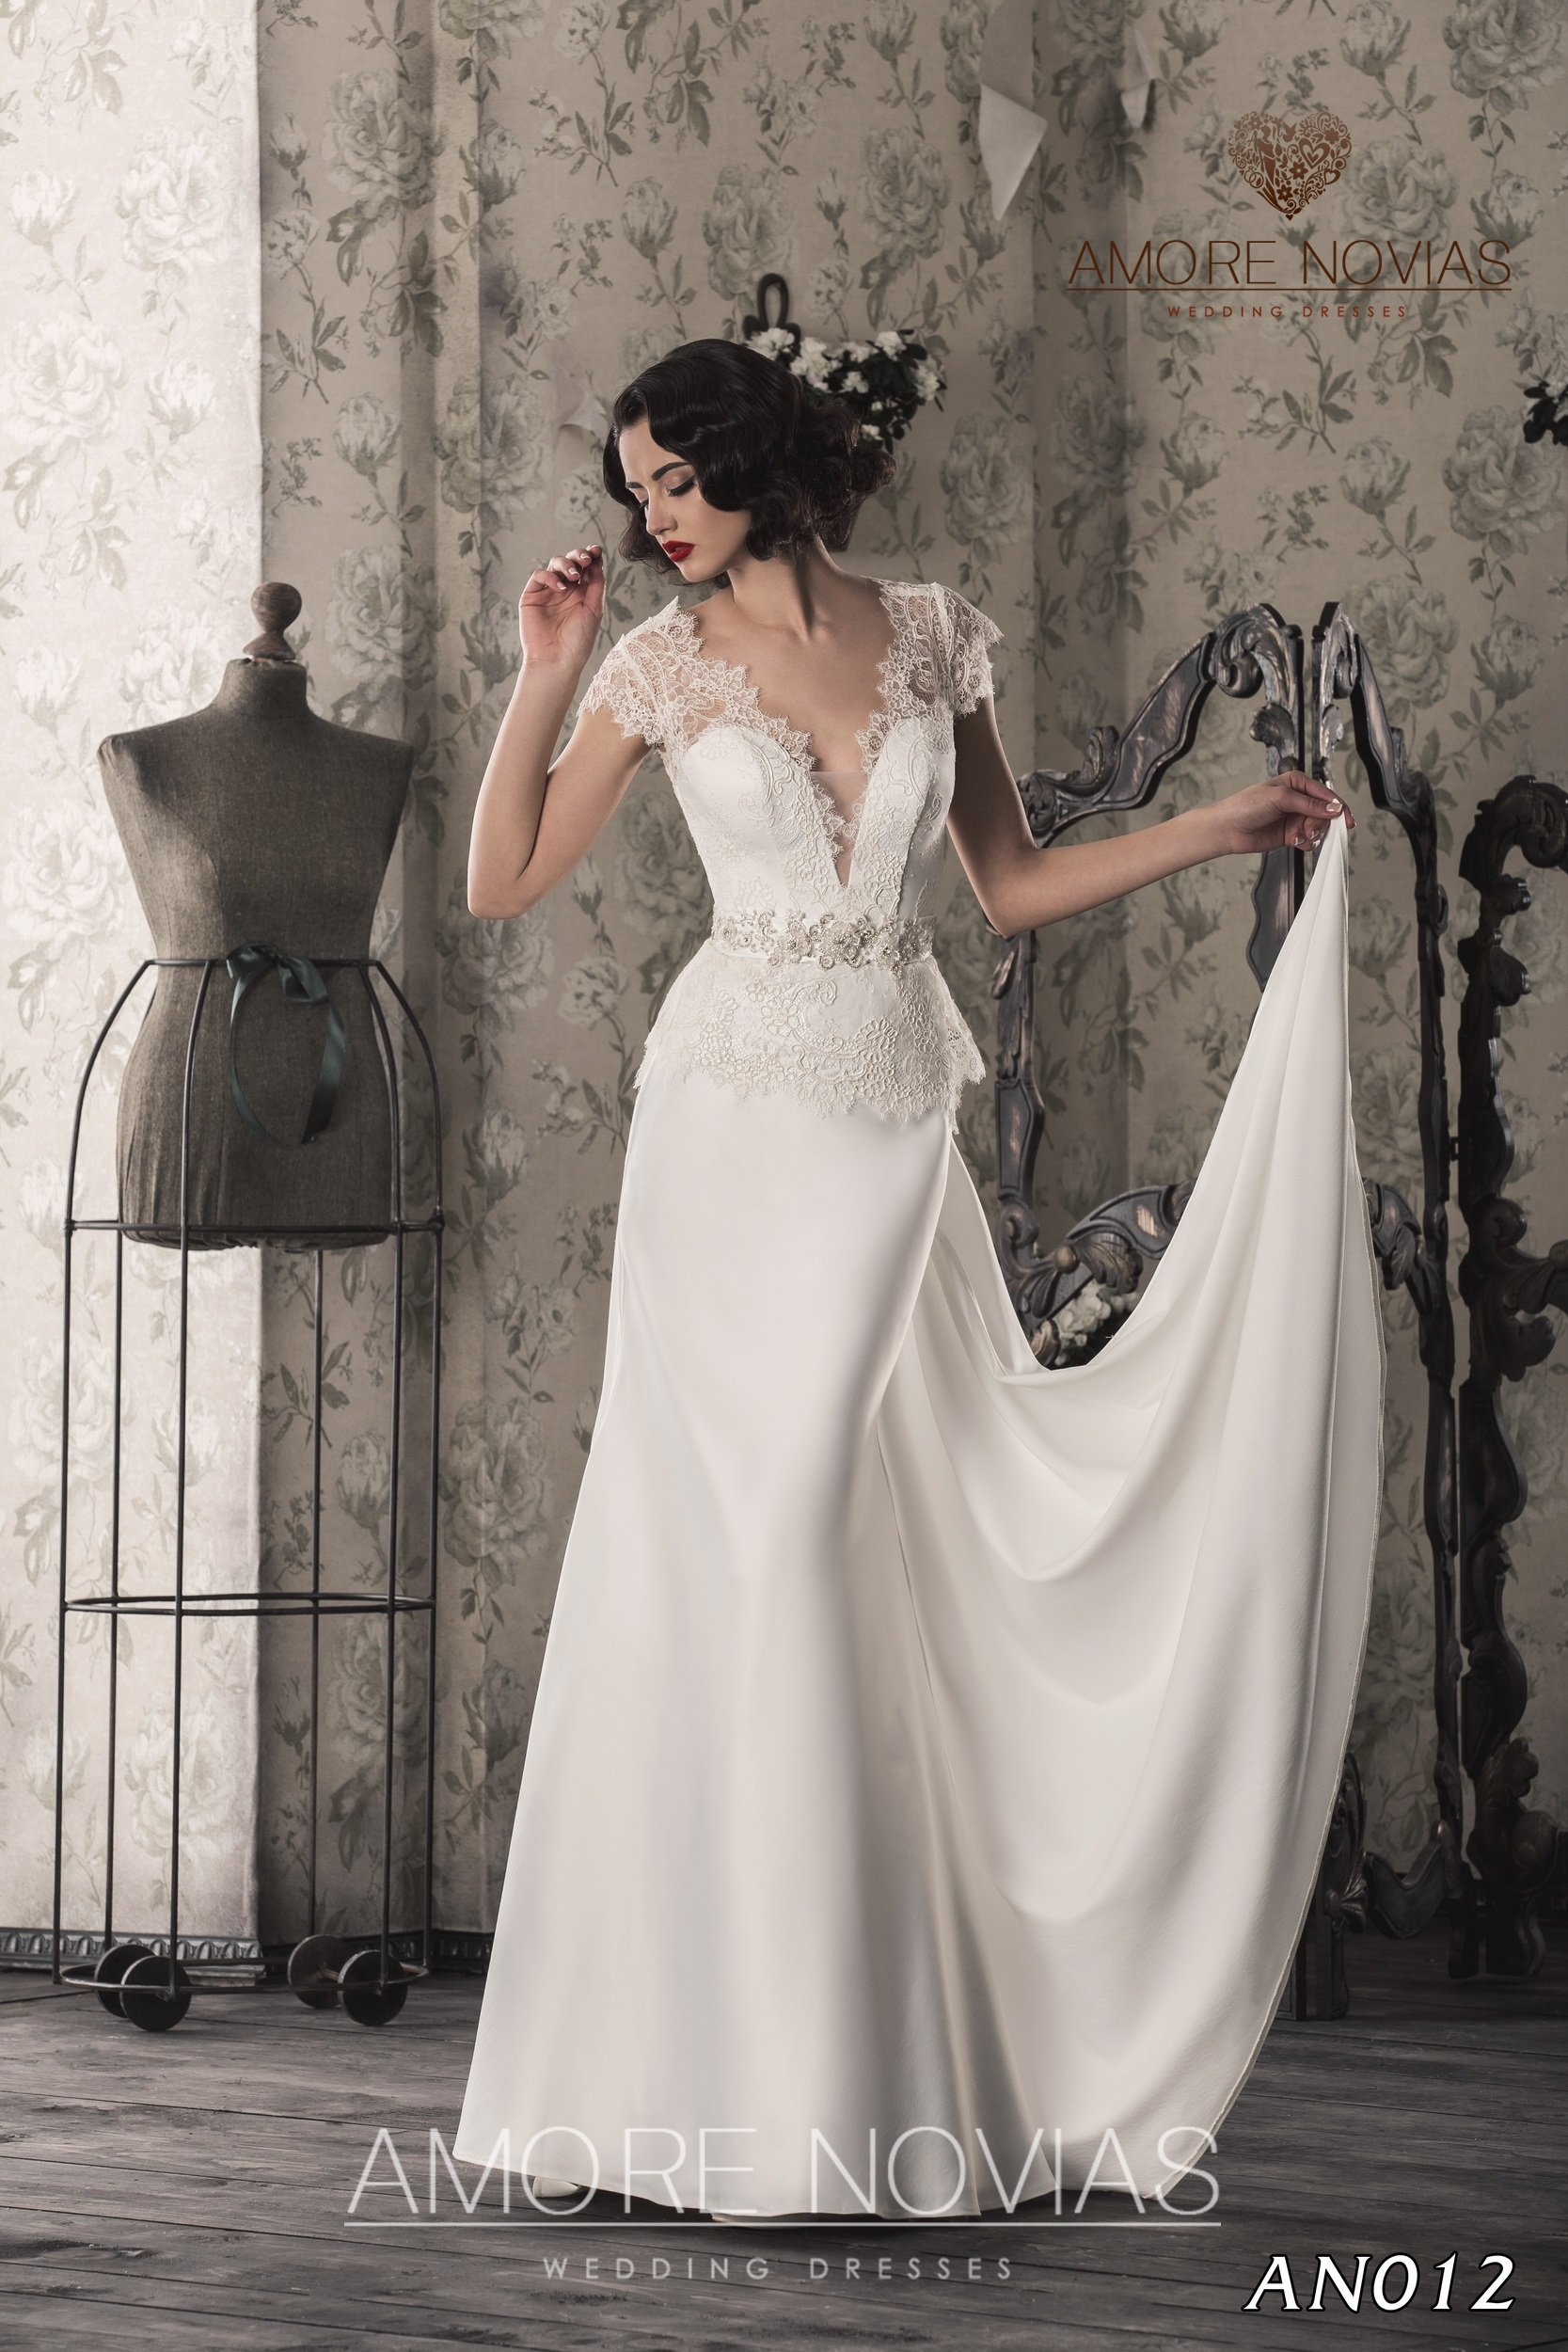 http://amore-novias.com/images/stories/virtuemart/product/an012.jpg